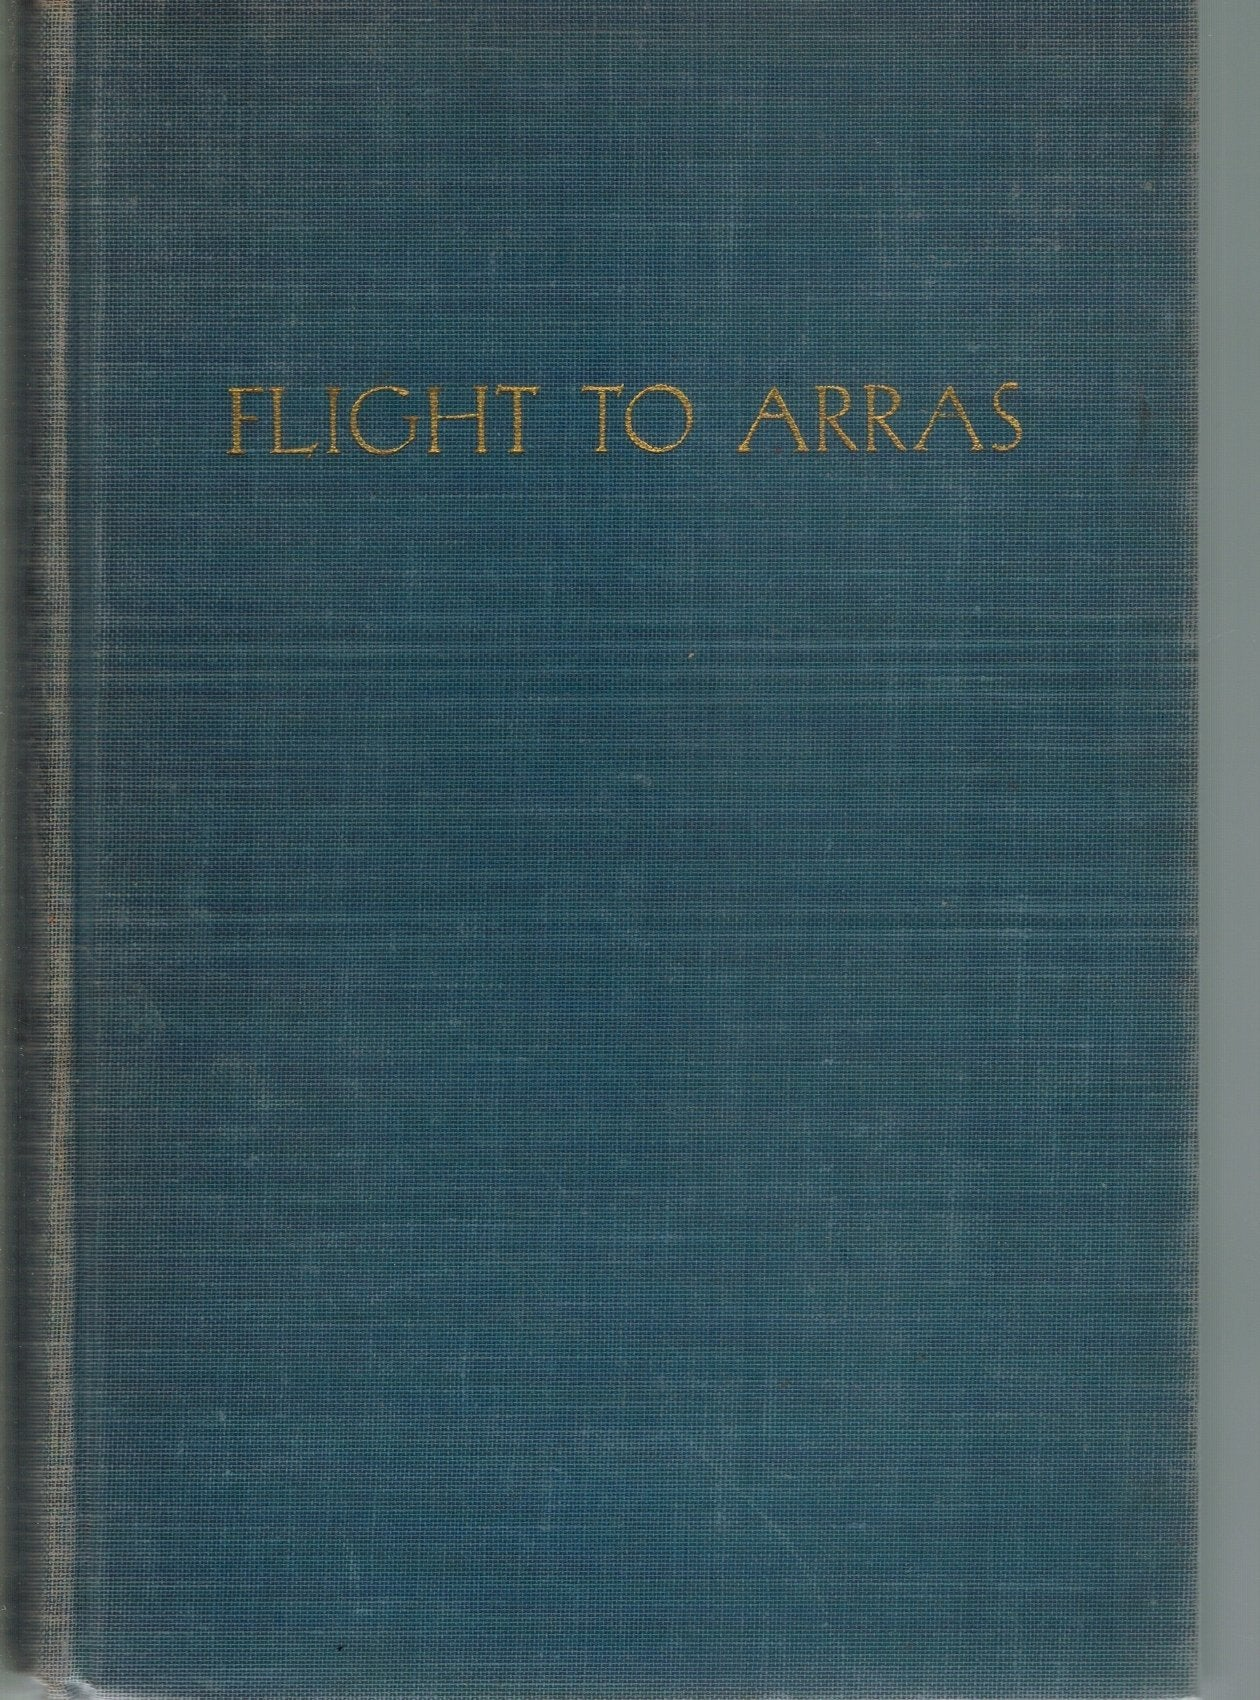 FLIGHT TO ARRAS - books-new